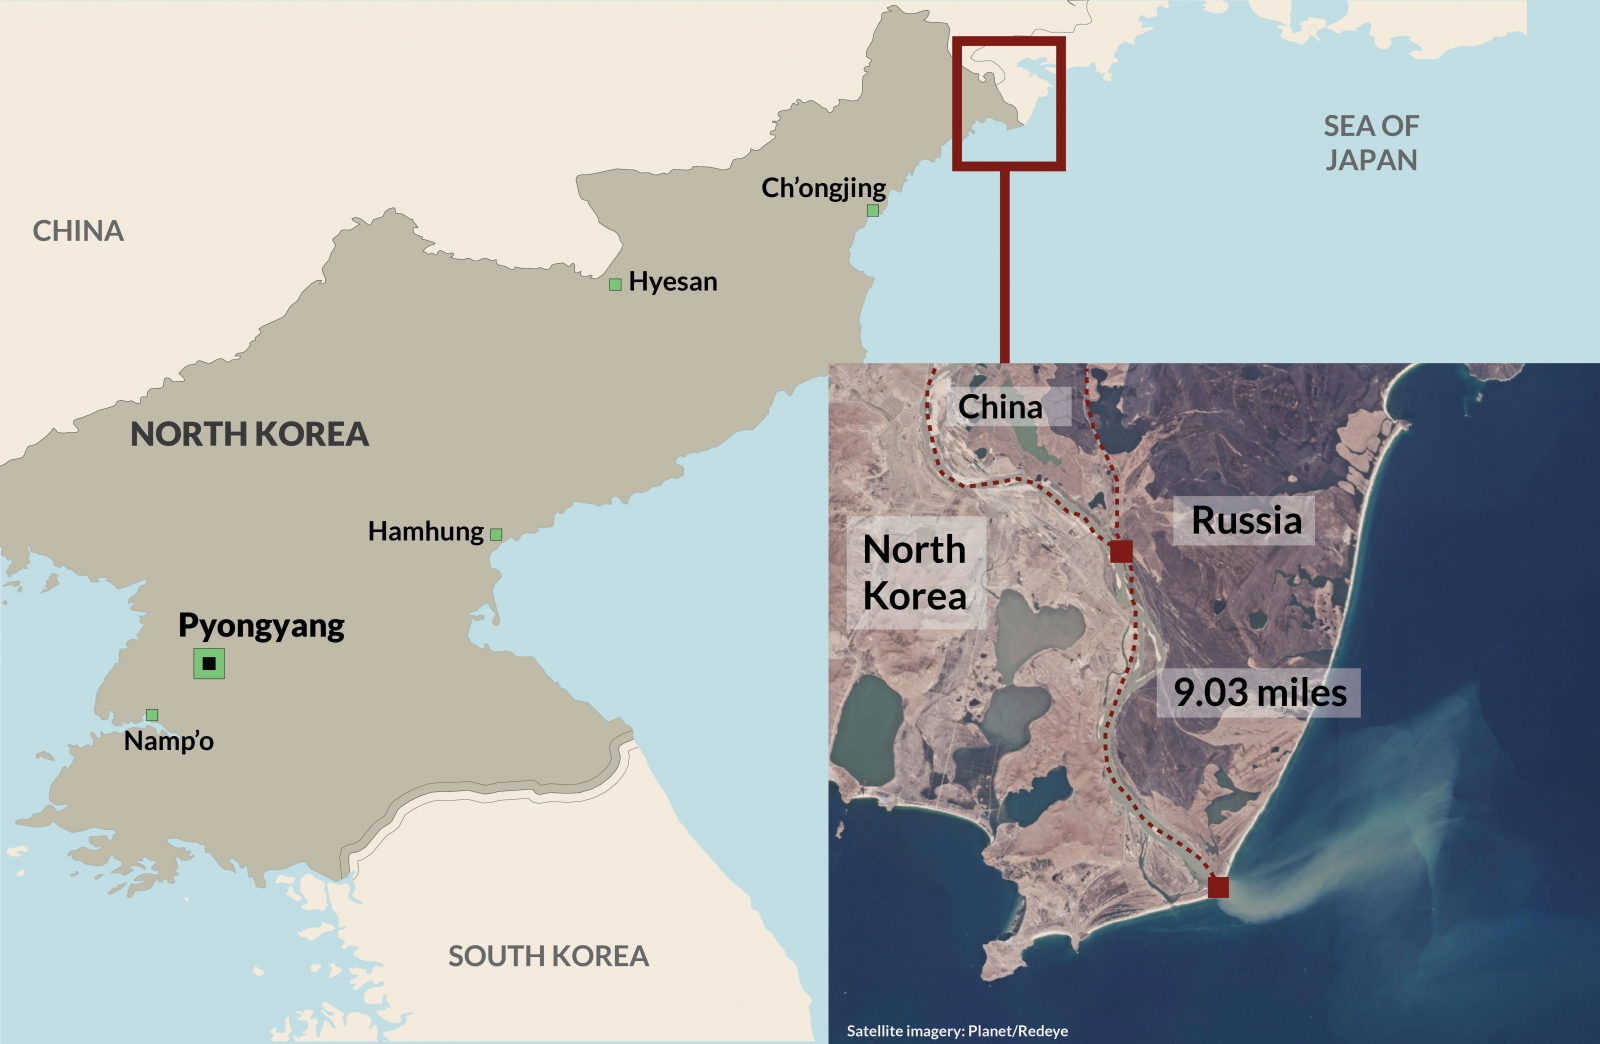 North Korea and Russia borders